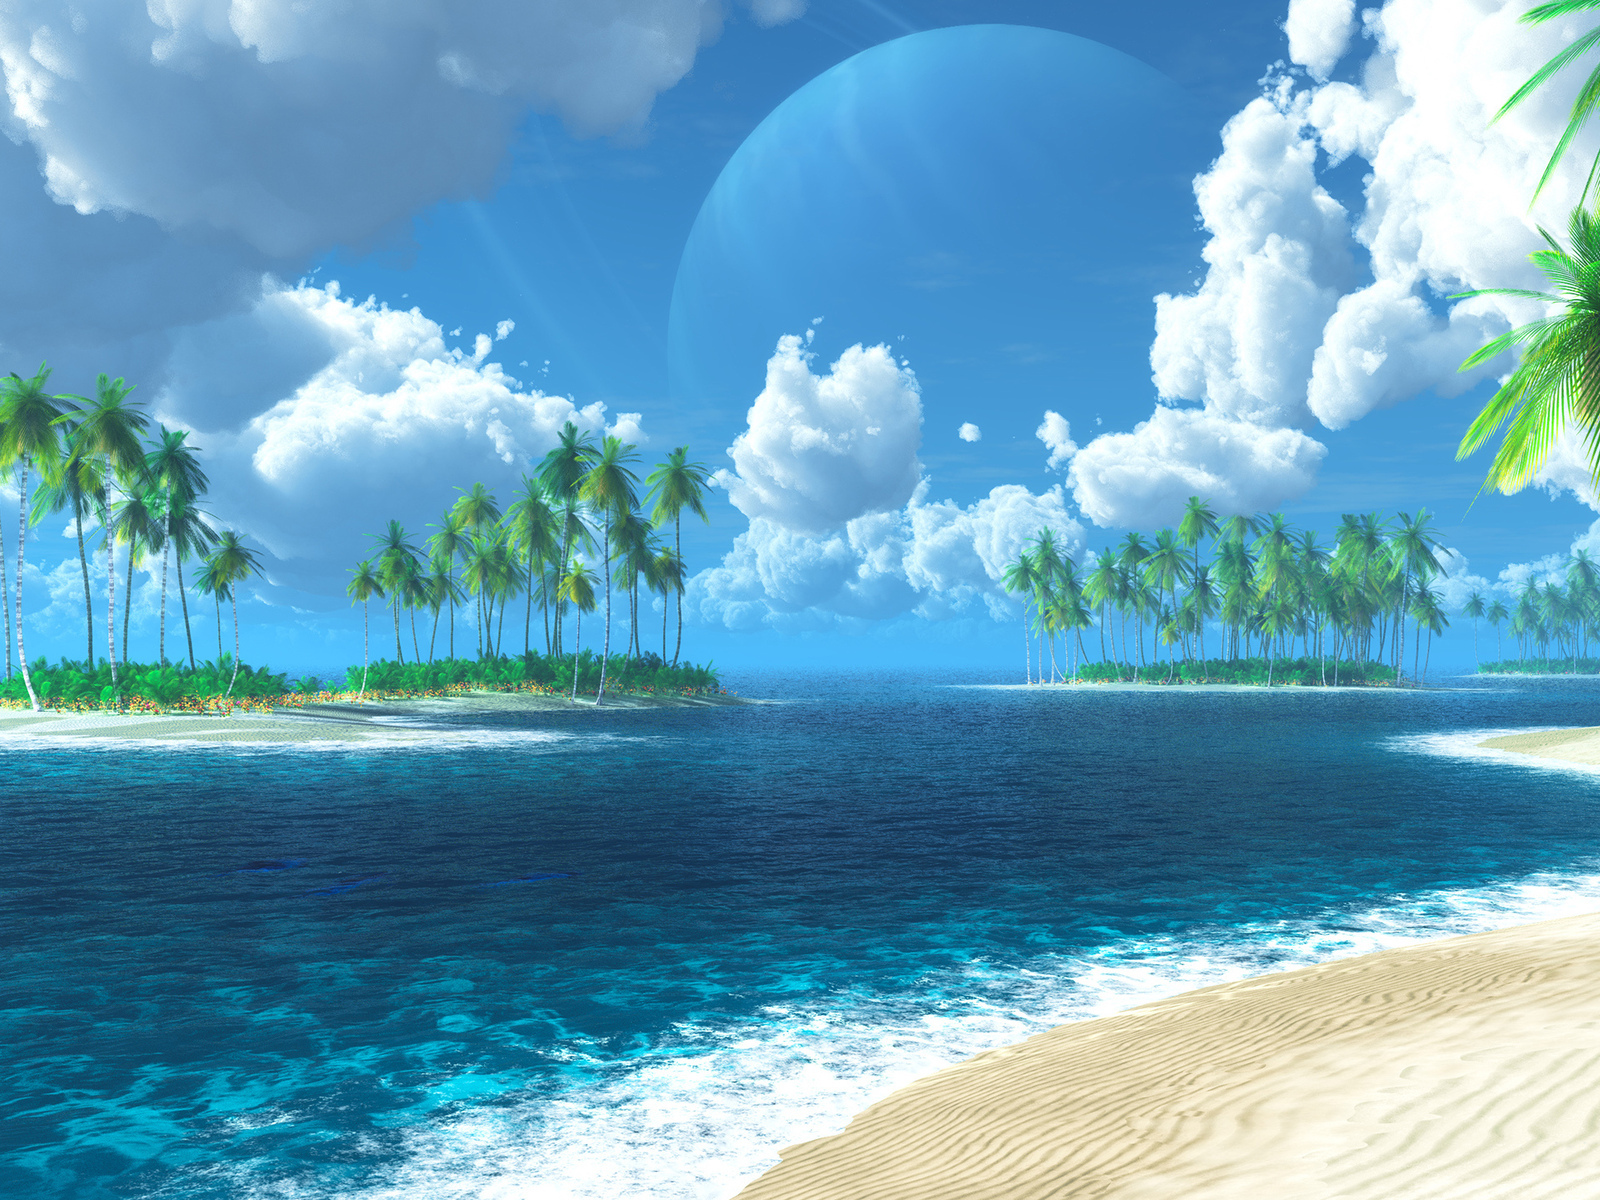 21387 download wallpaper Landscape, Sea, Clouds, Beach, Palms screensavers and pictures for free